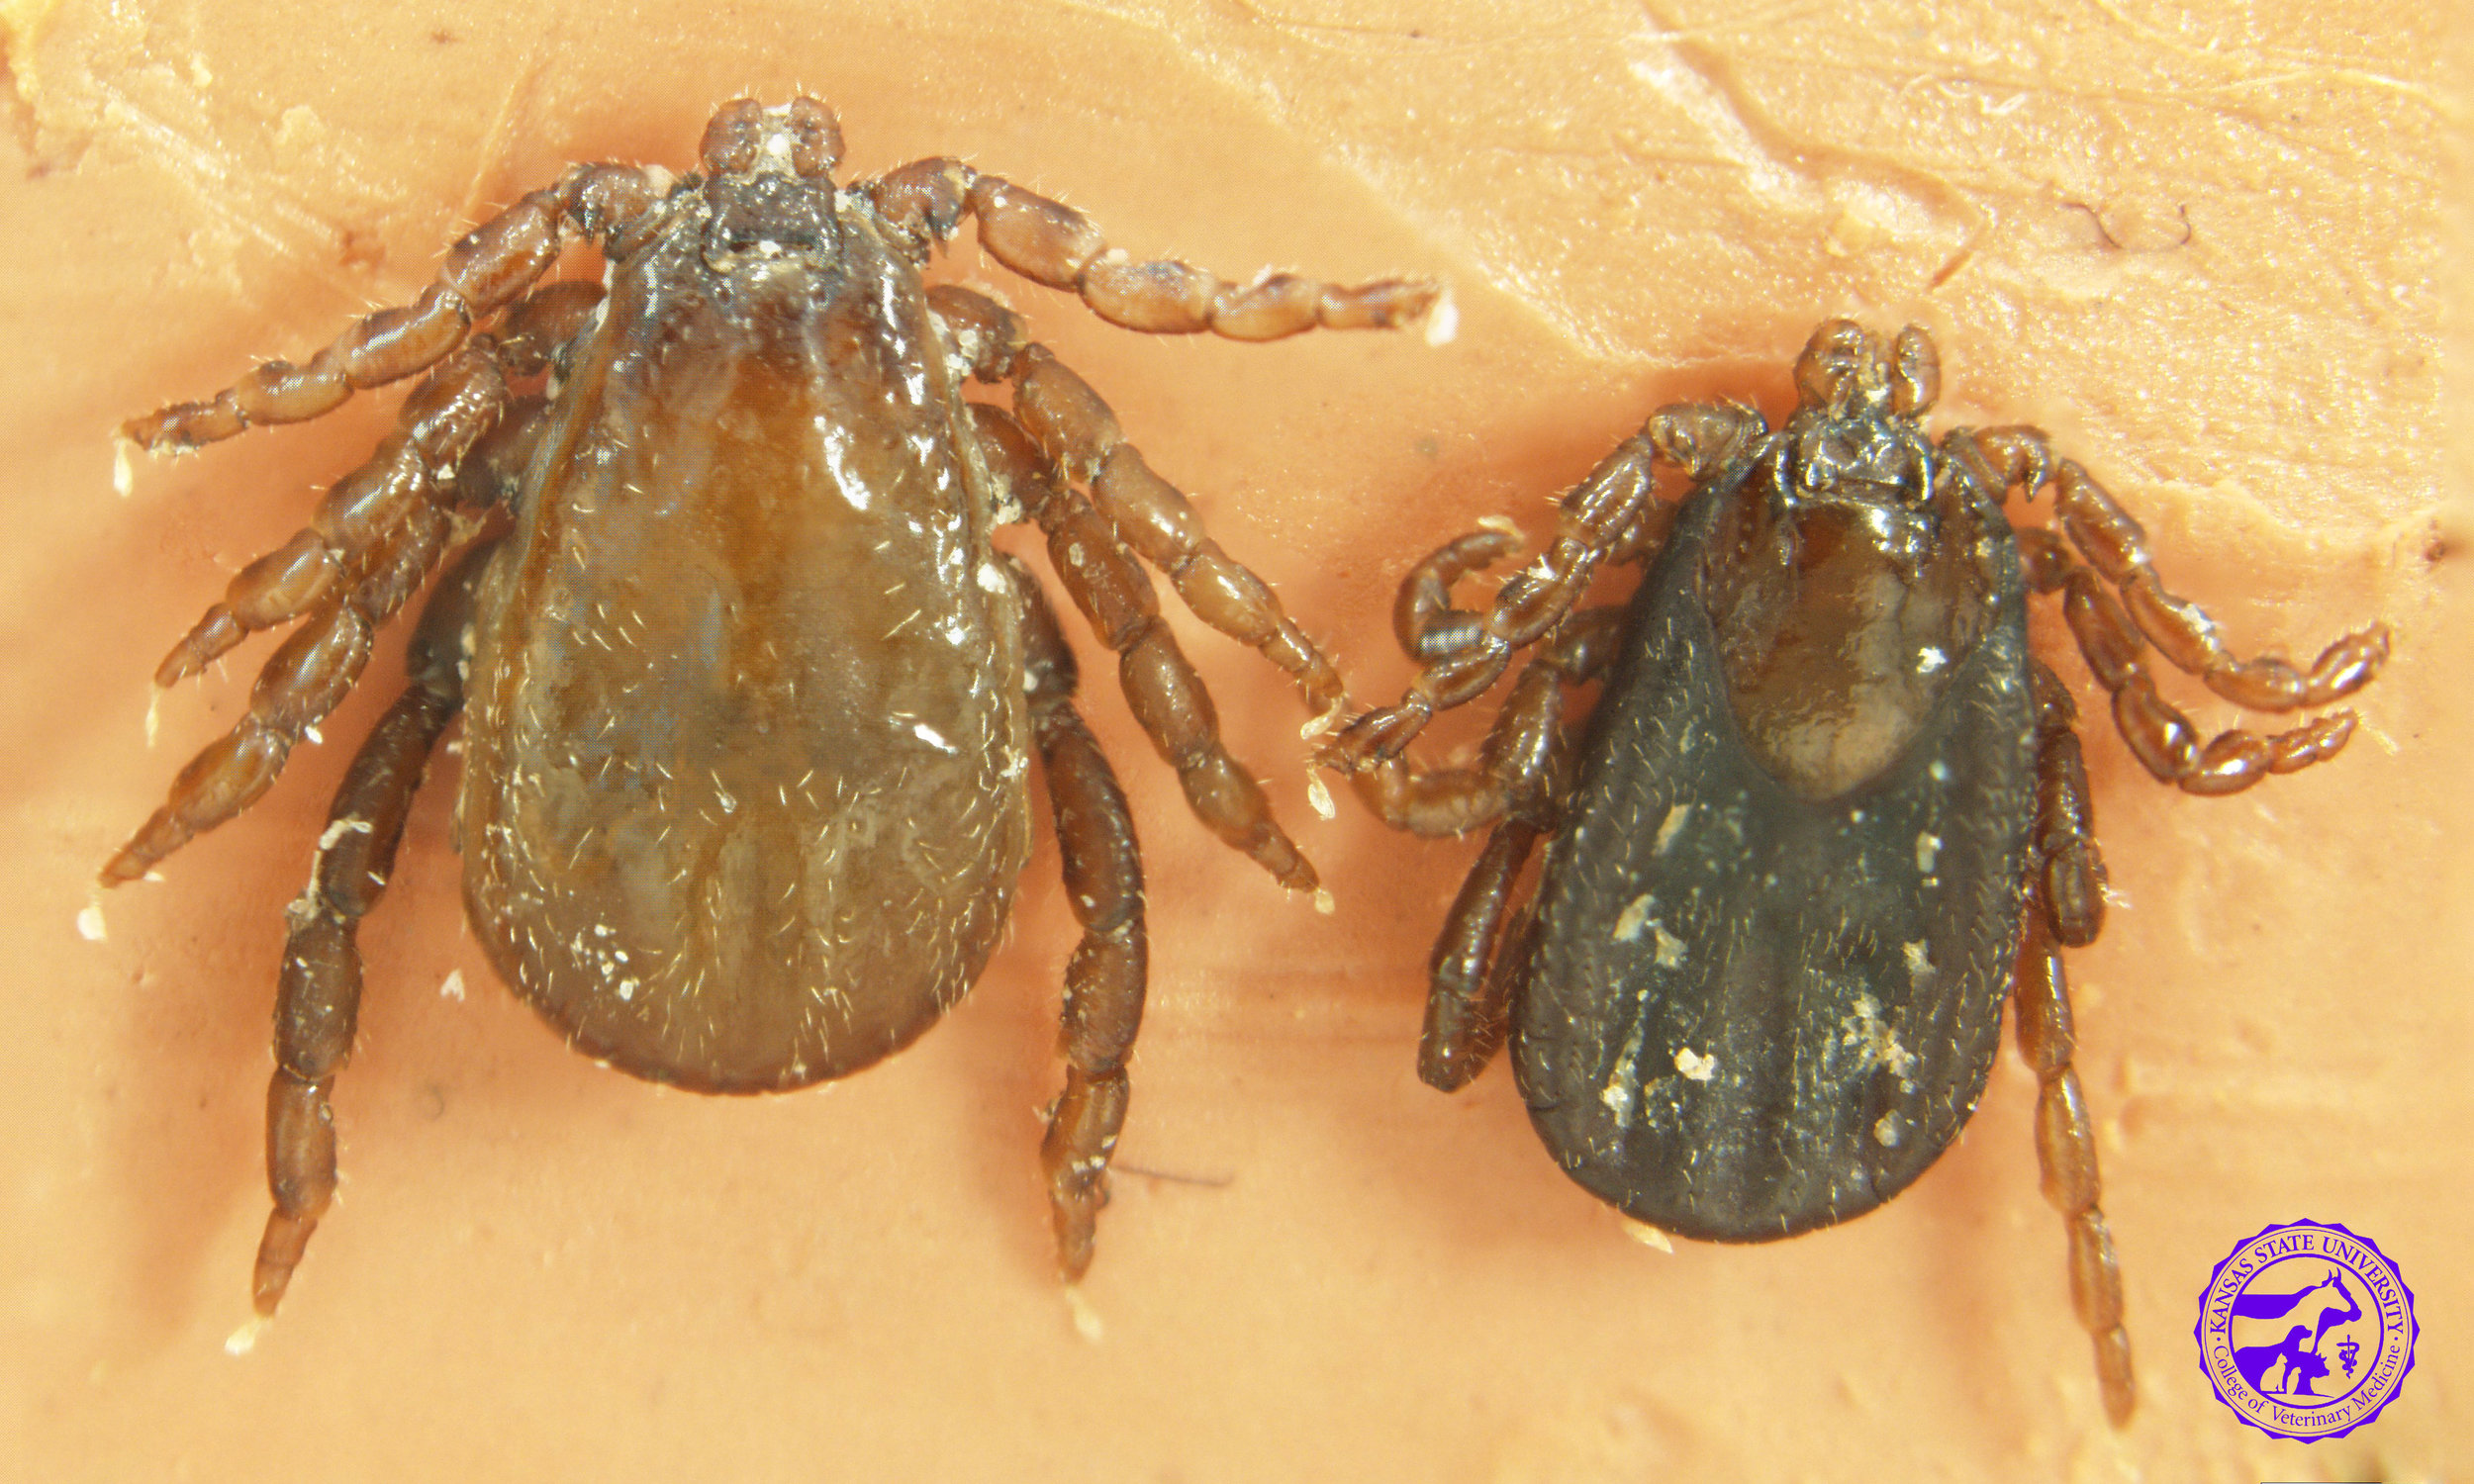 Winter Tick   Dermacentor albipictus    Range - all across North America   Active season - winter   Disease transmission to horses-  irritation and blood loss due to high numbers in one infestation   Disease transmission to humans-  none known